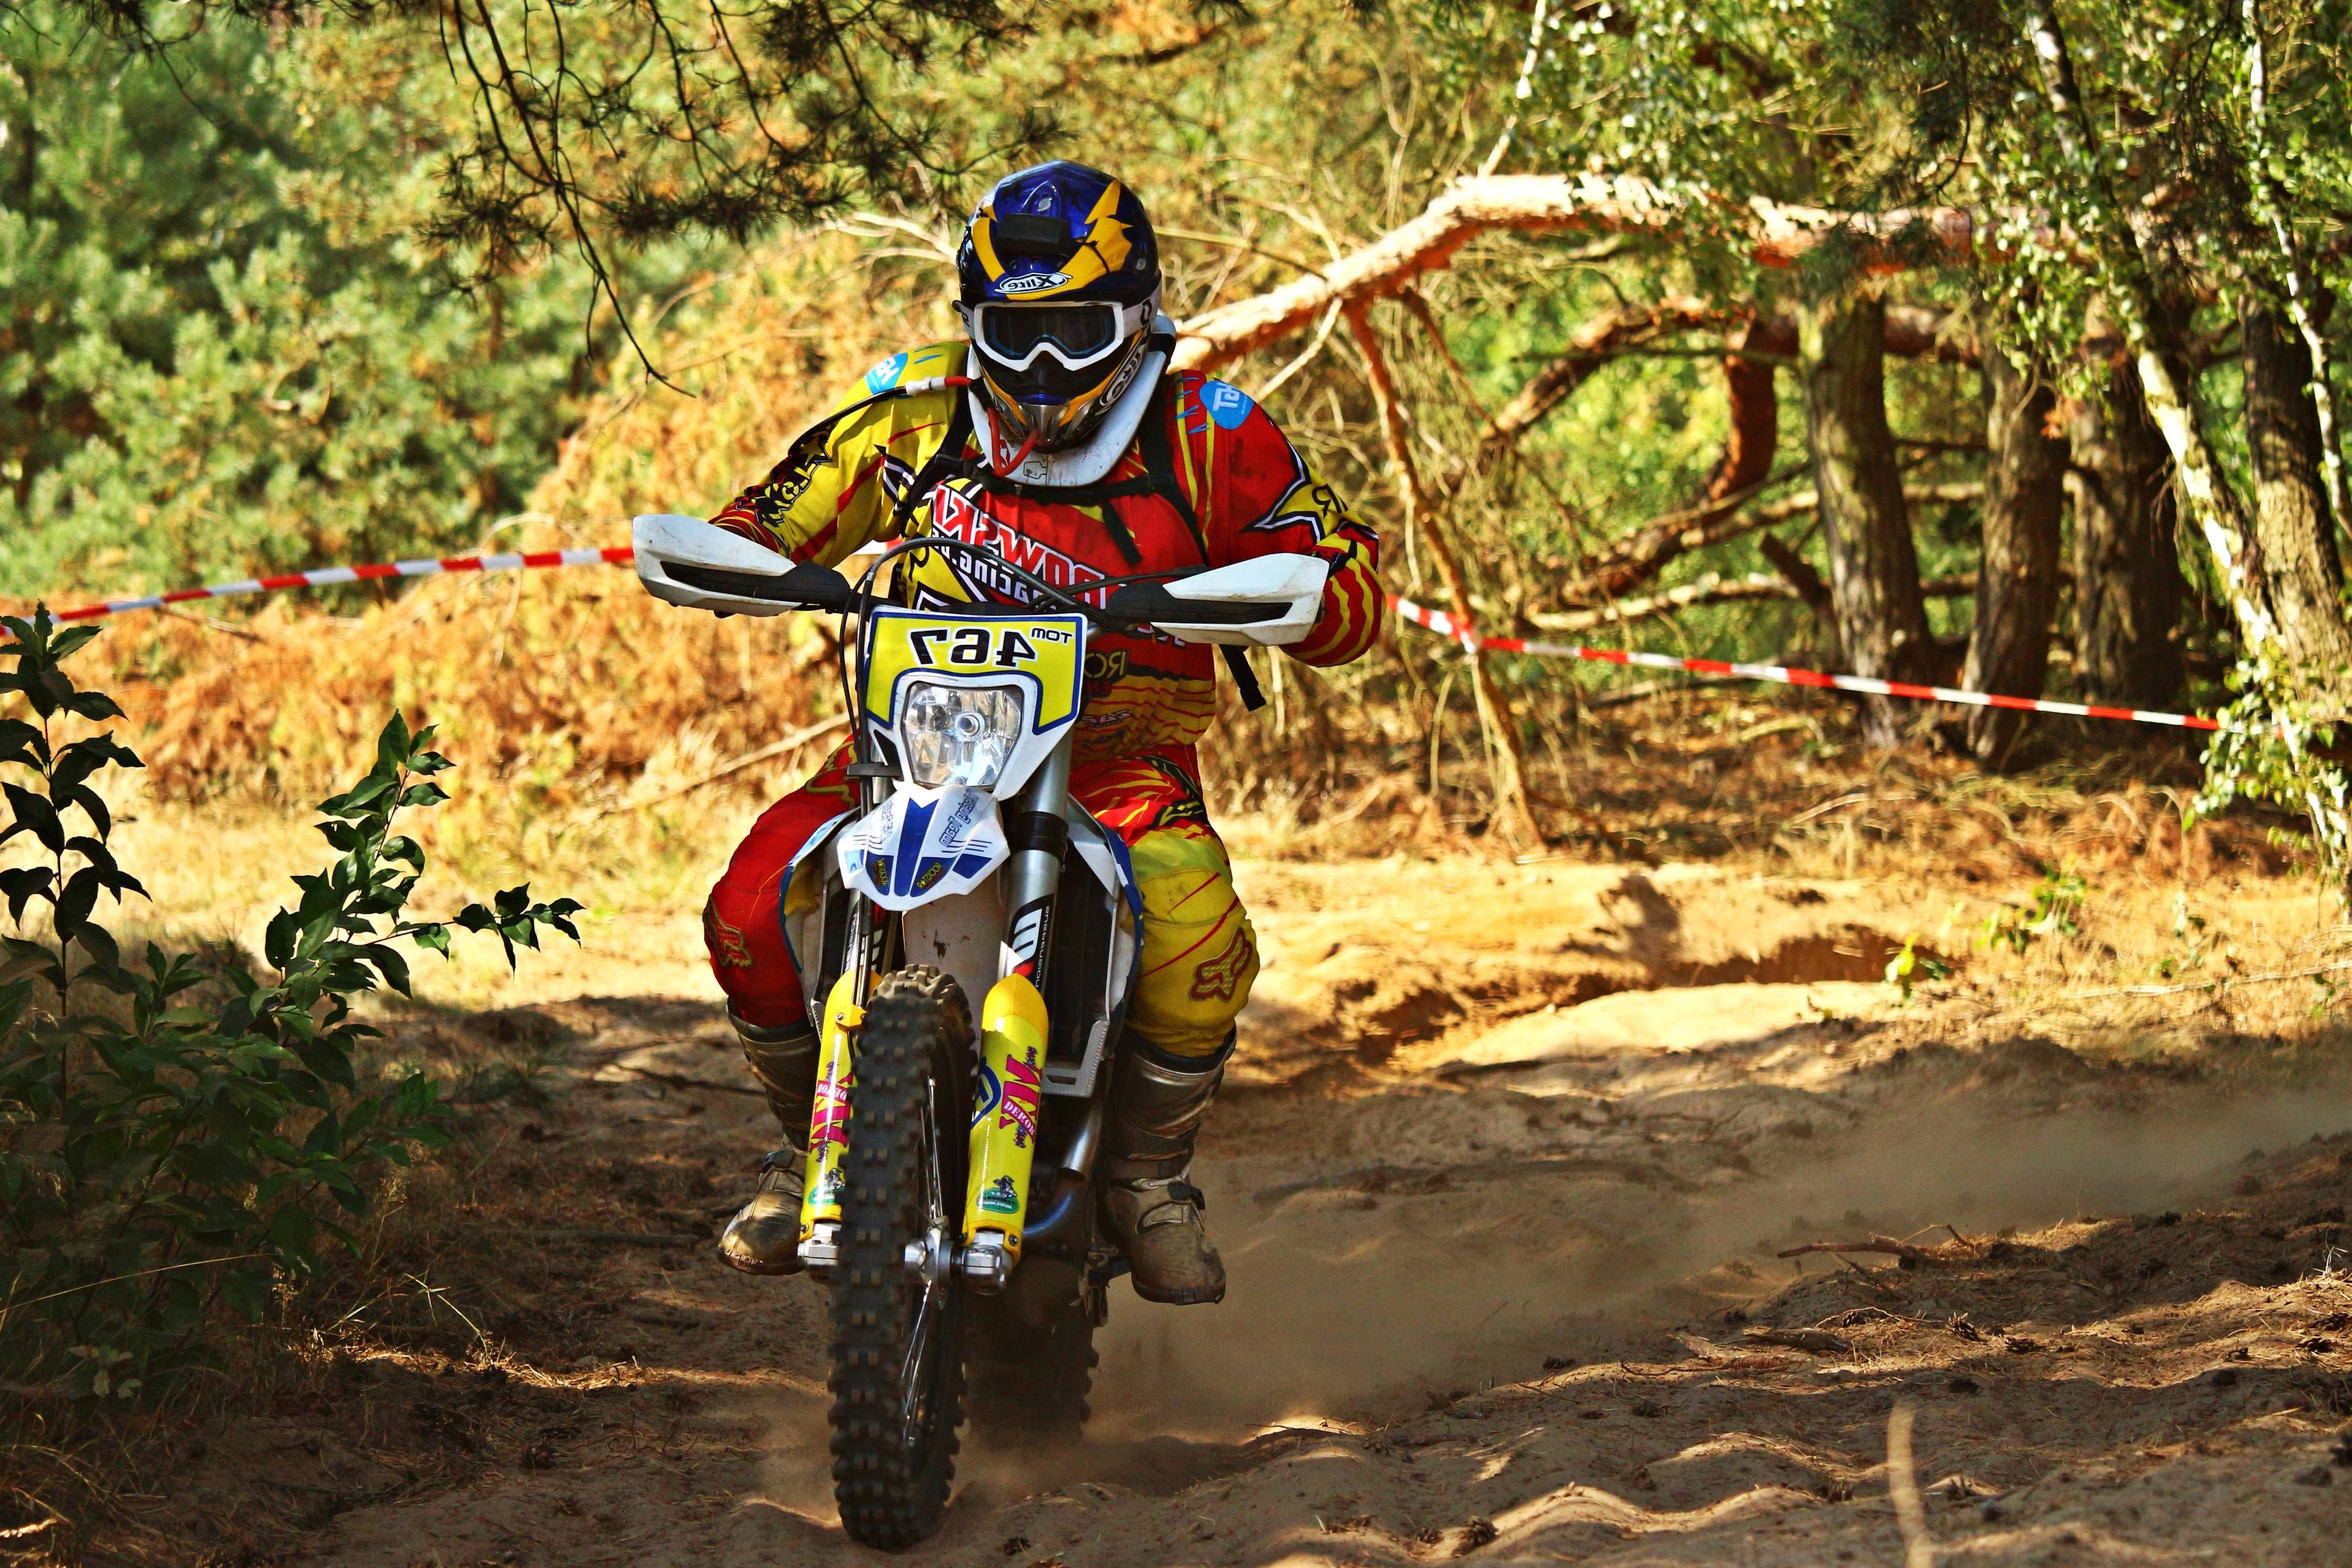 The Tire Man >> Free picture: mud, forest, wheel, race, motocross, sport, adventure, road, motorcycle, vehicle